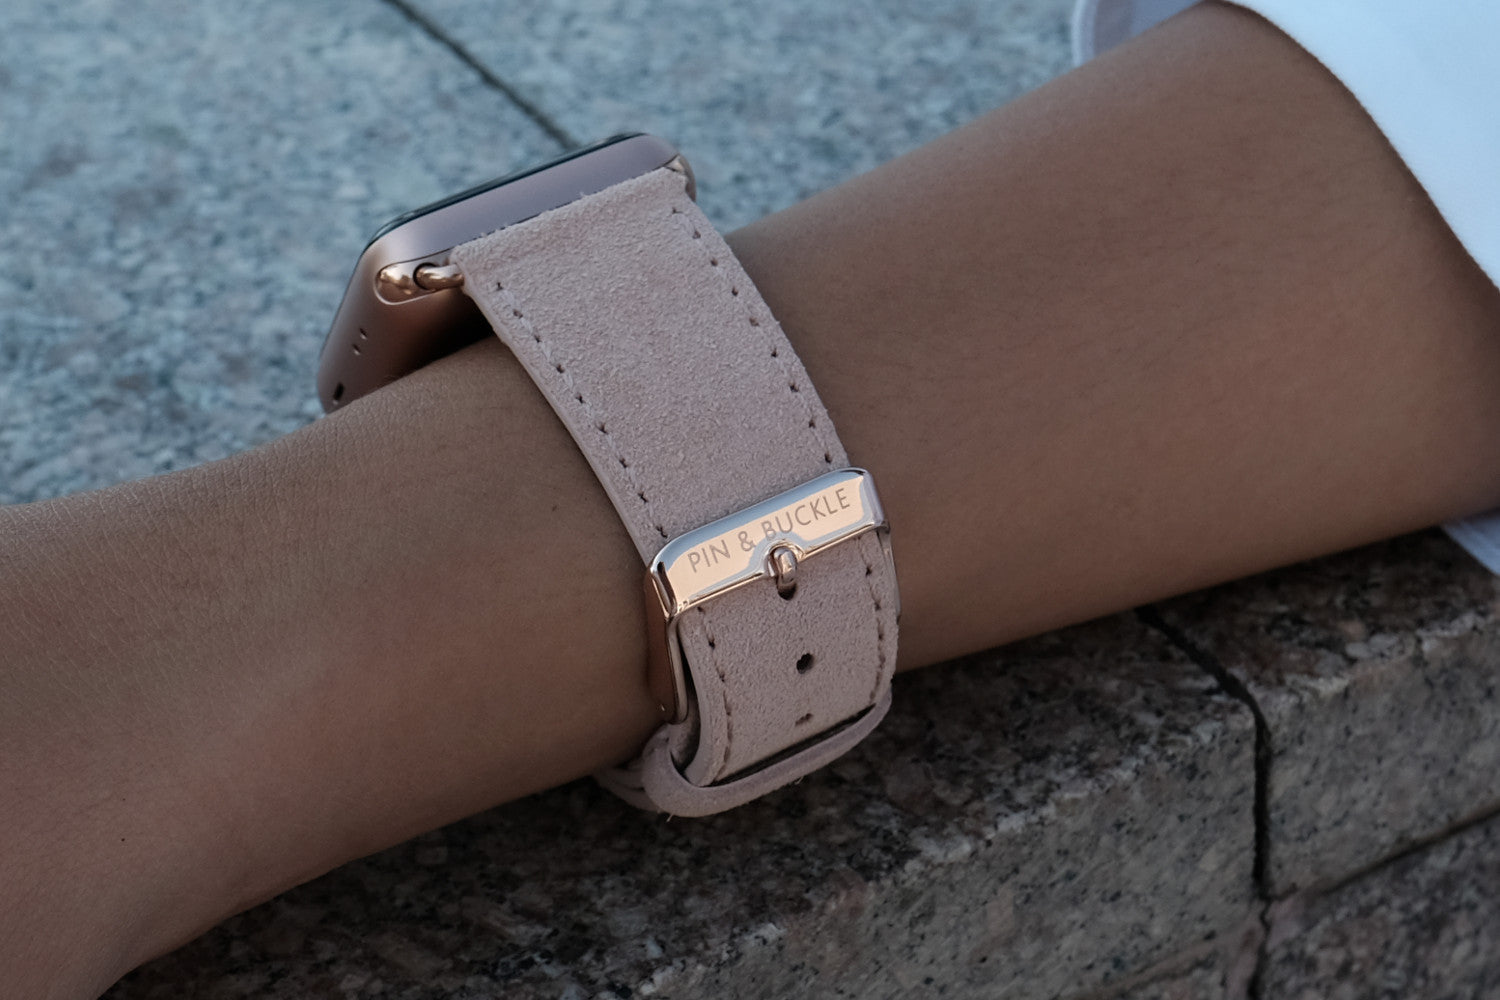 Pin and Buckle Apple Watch Bands - Velour - Suede Leather Apple Watch Band -  Peach - Polished Stainless Steel Buckle